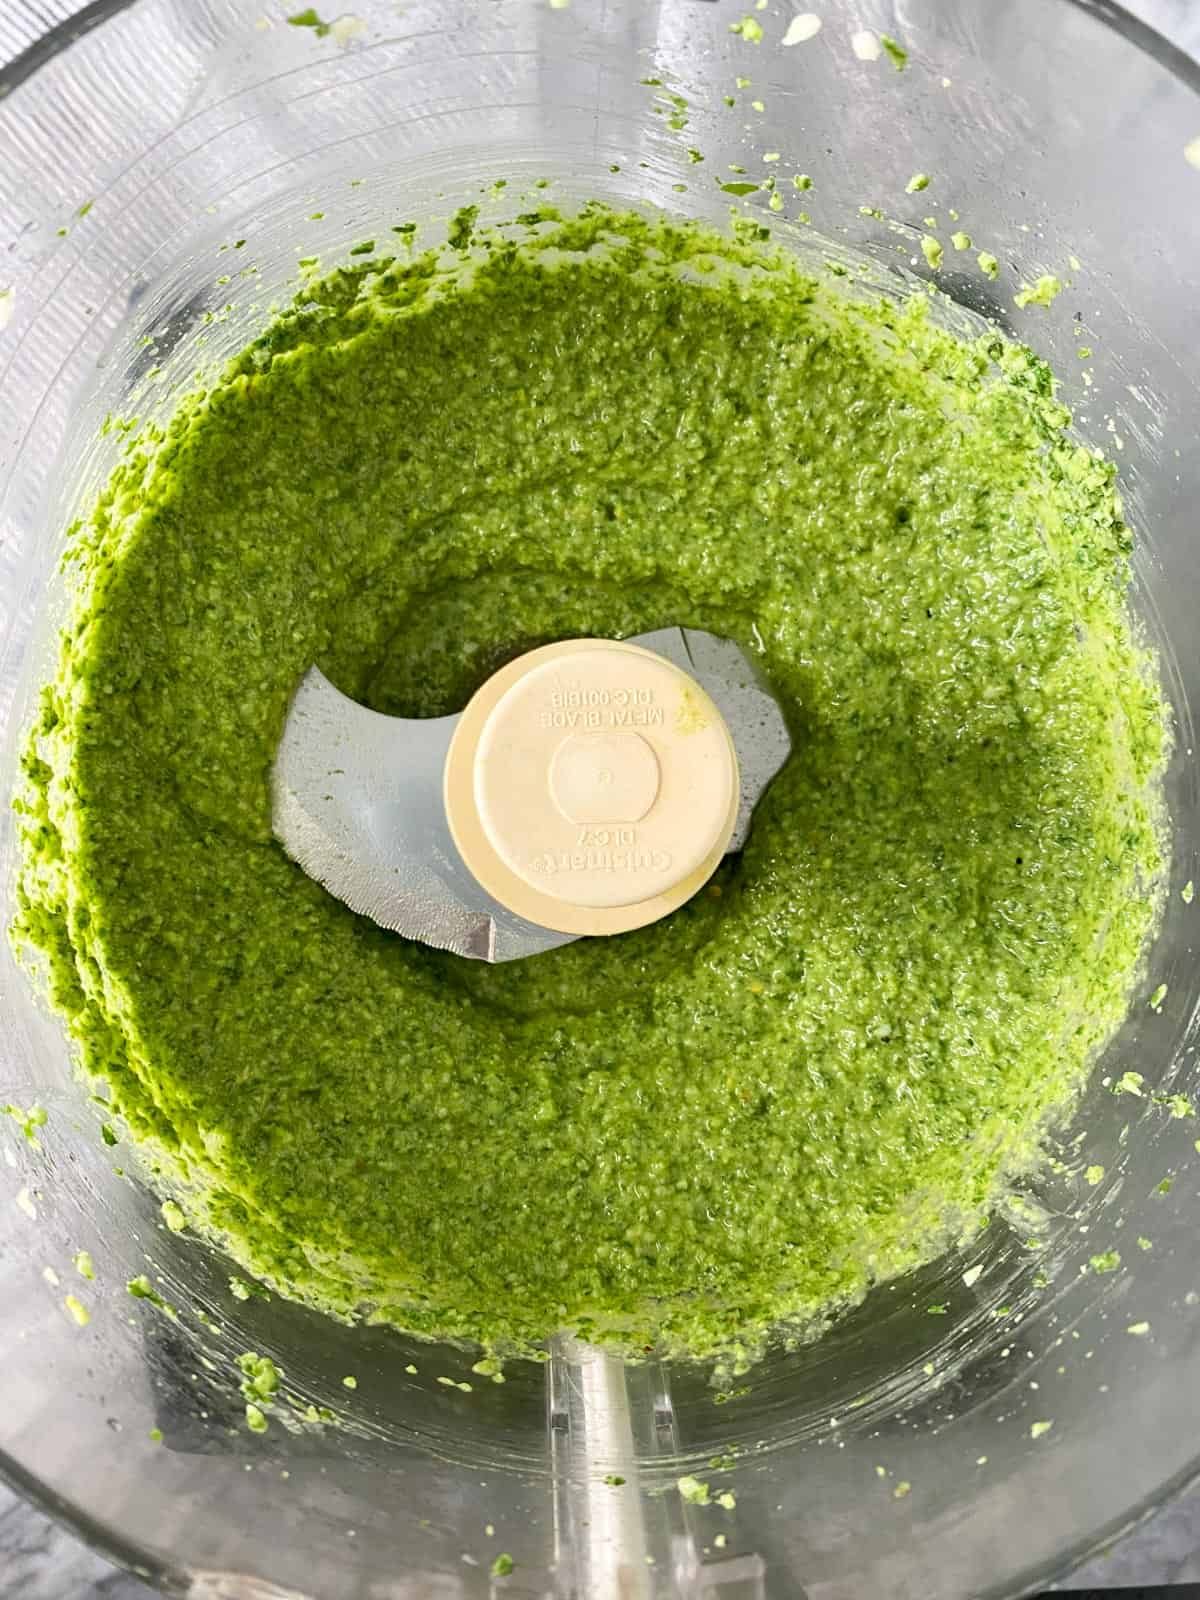 easy pesto recipe after the virgin olive oil is added